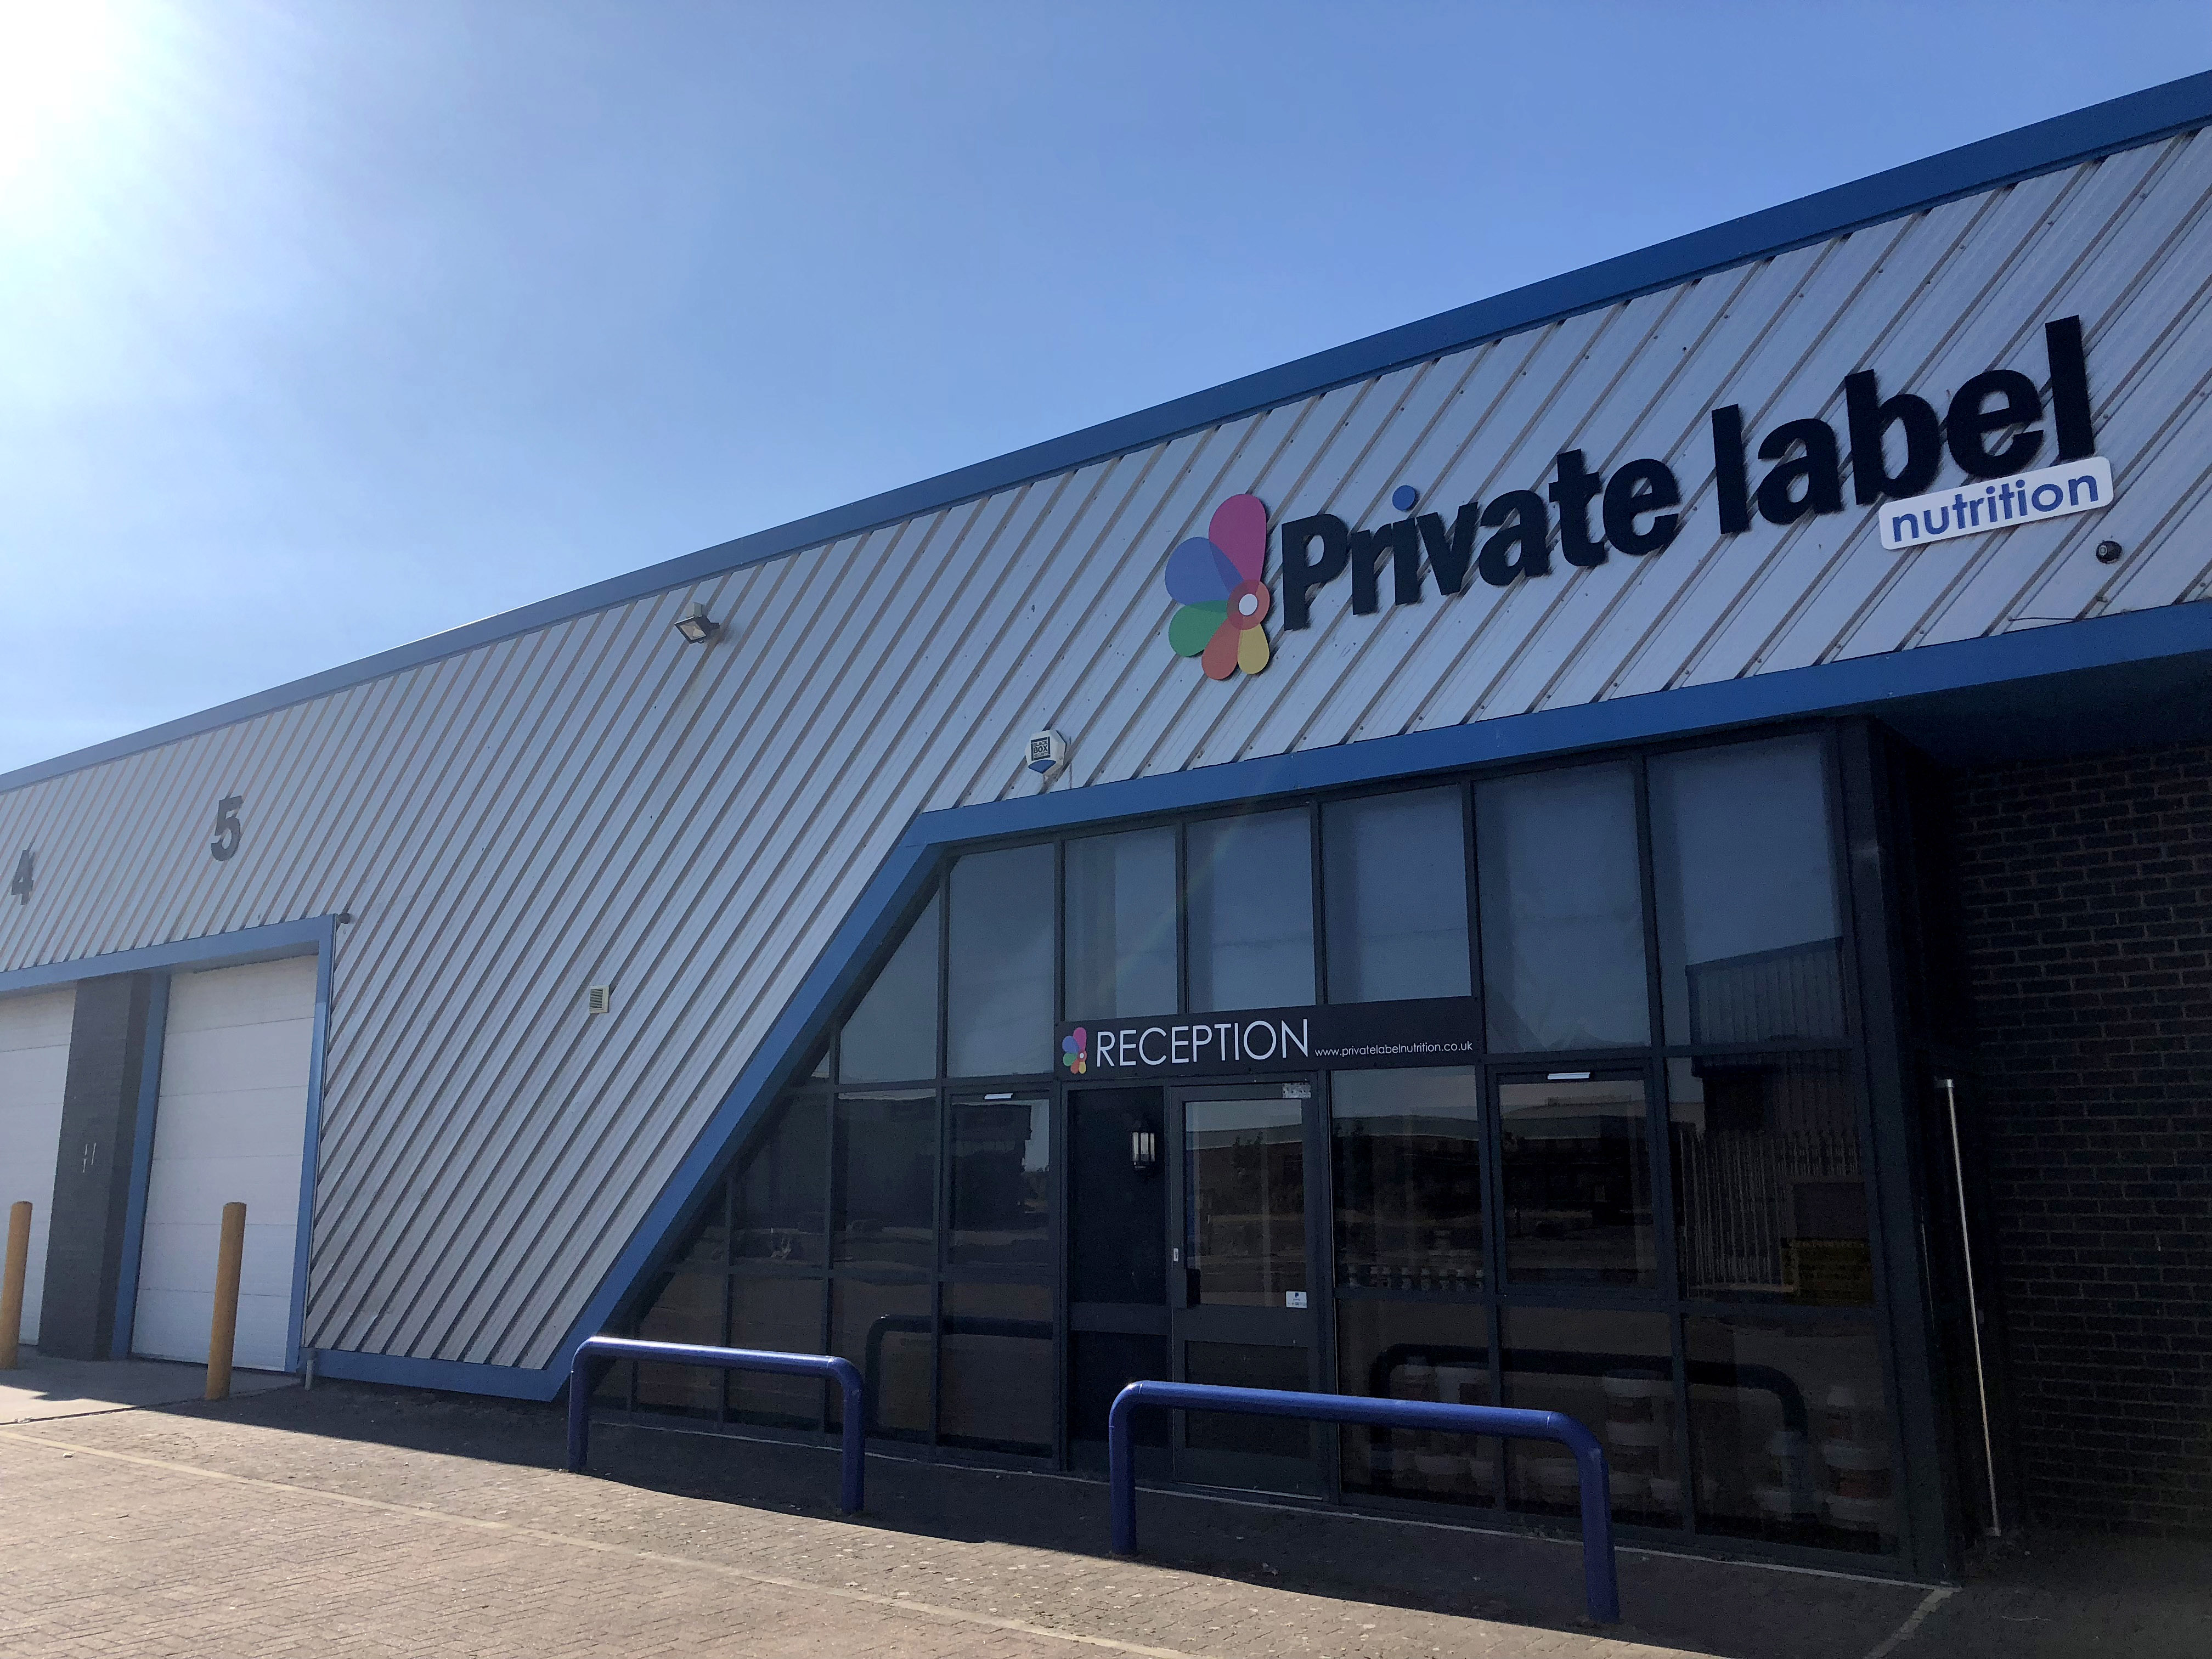 This is a picture of Gratifying Private Label Nutrition Blackpool